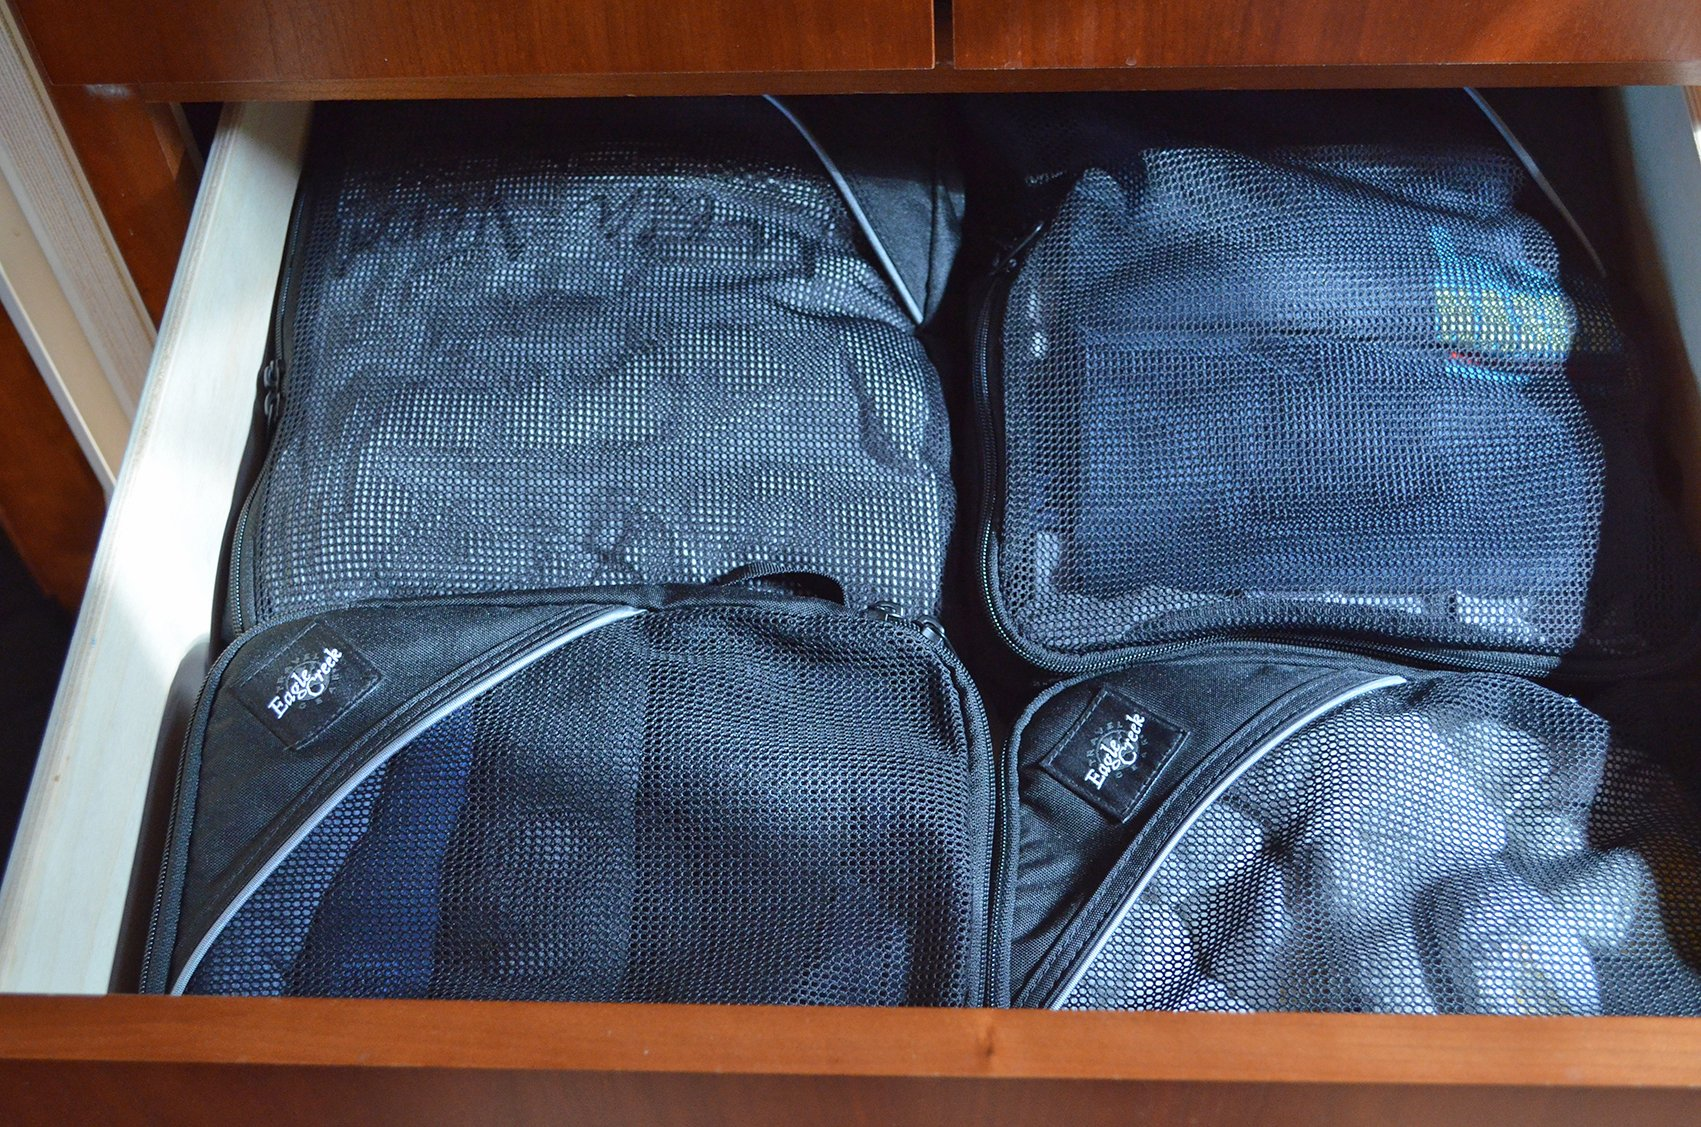 Packing Cubes in Drawer